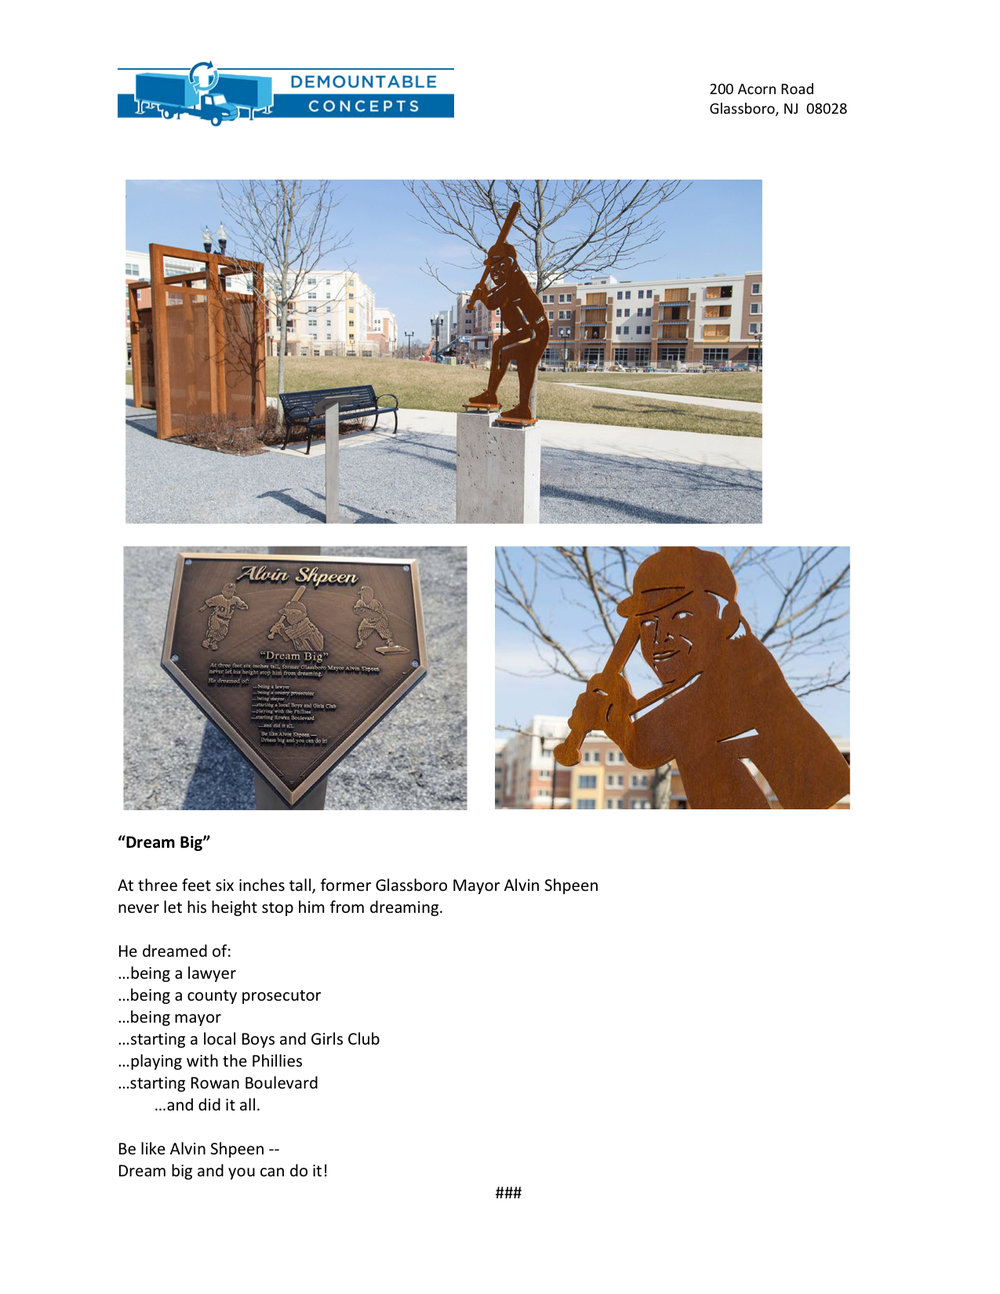 glassboro alvin shpeen Sculpture-Donation-Press-Release copy.jpeg